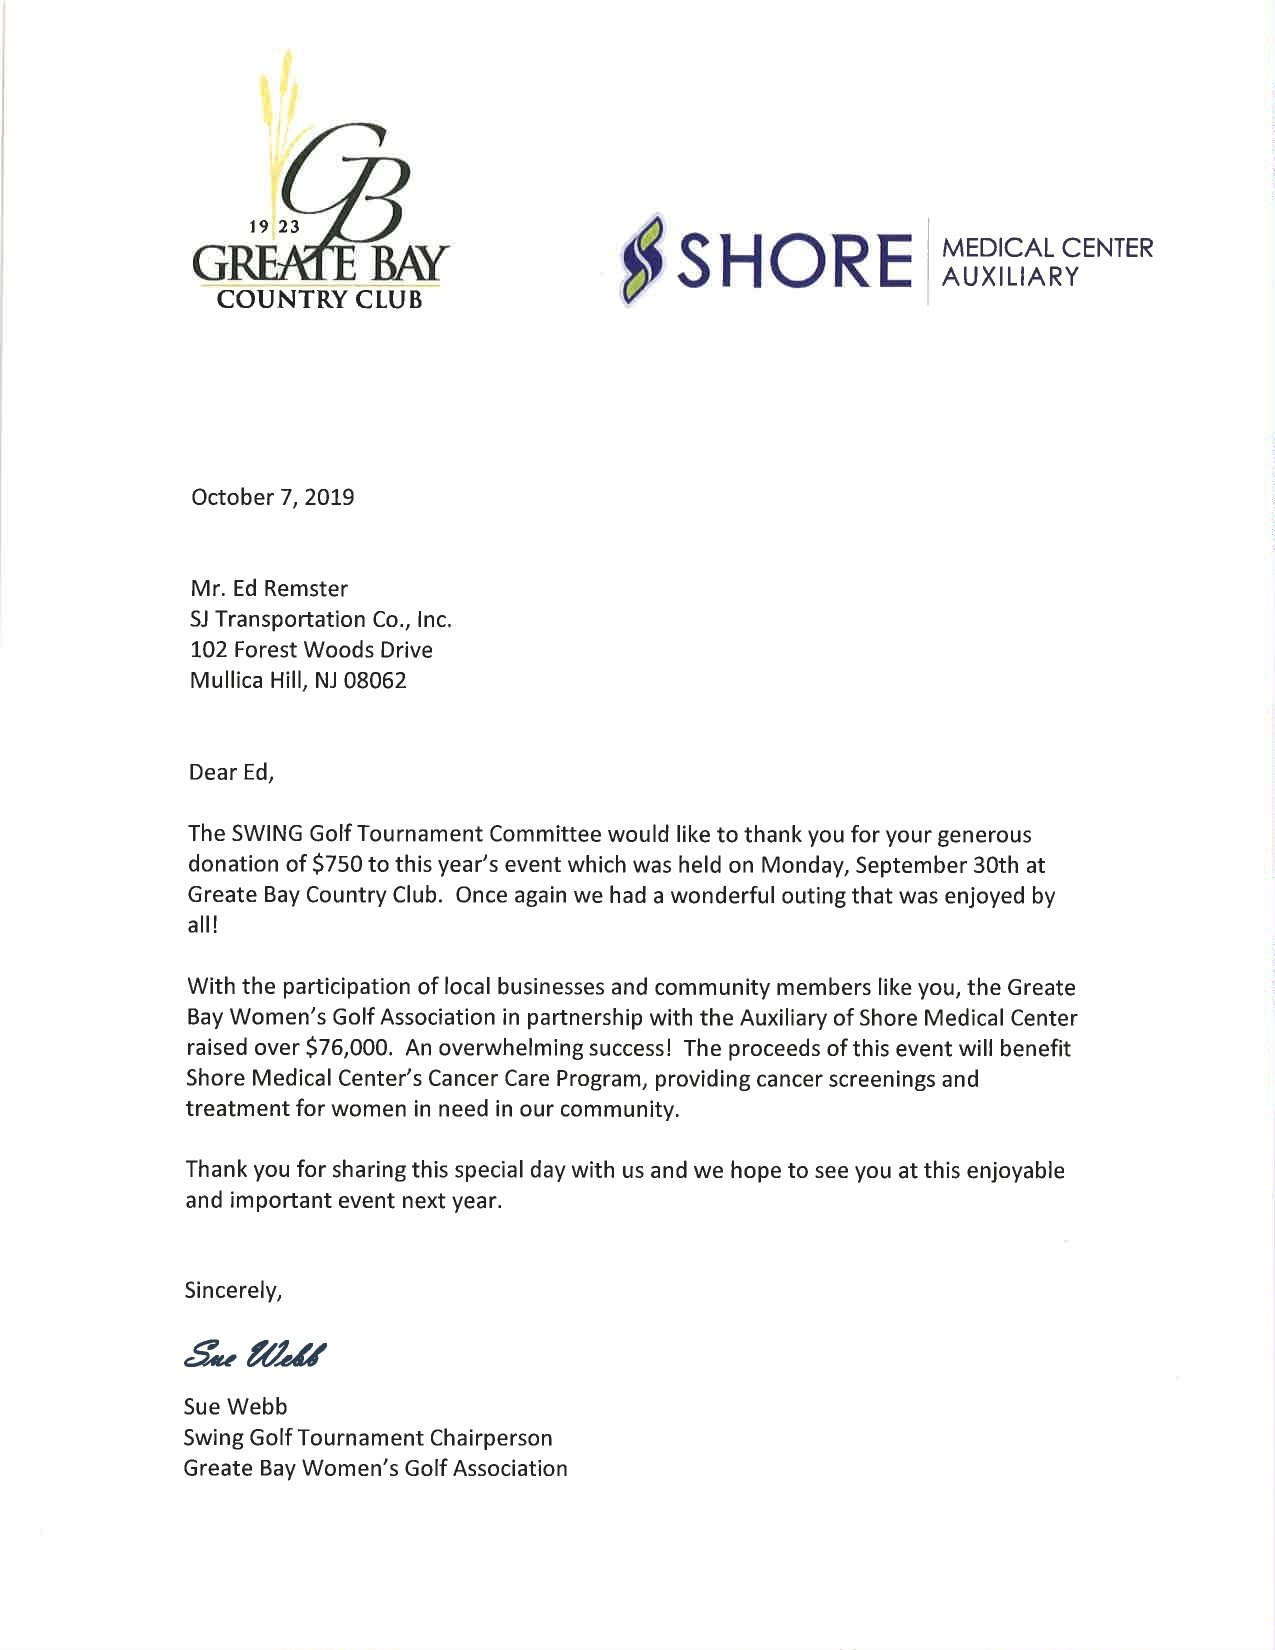 Thank You From Greater Bay Women's Golf Association